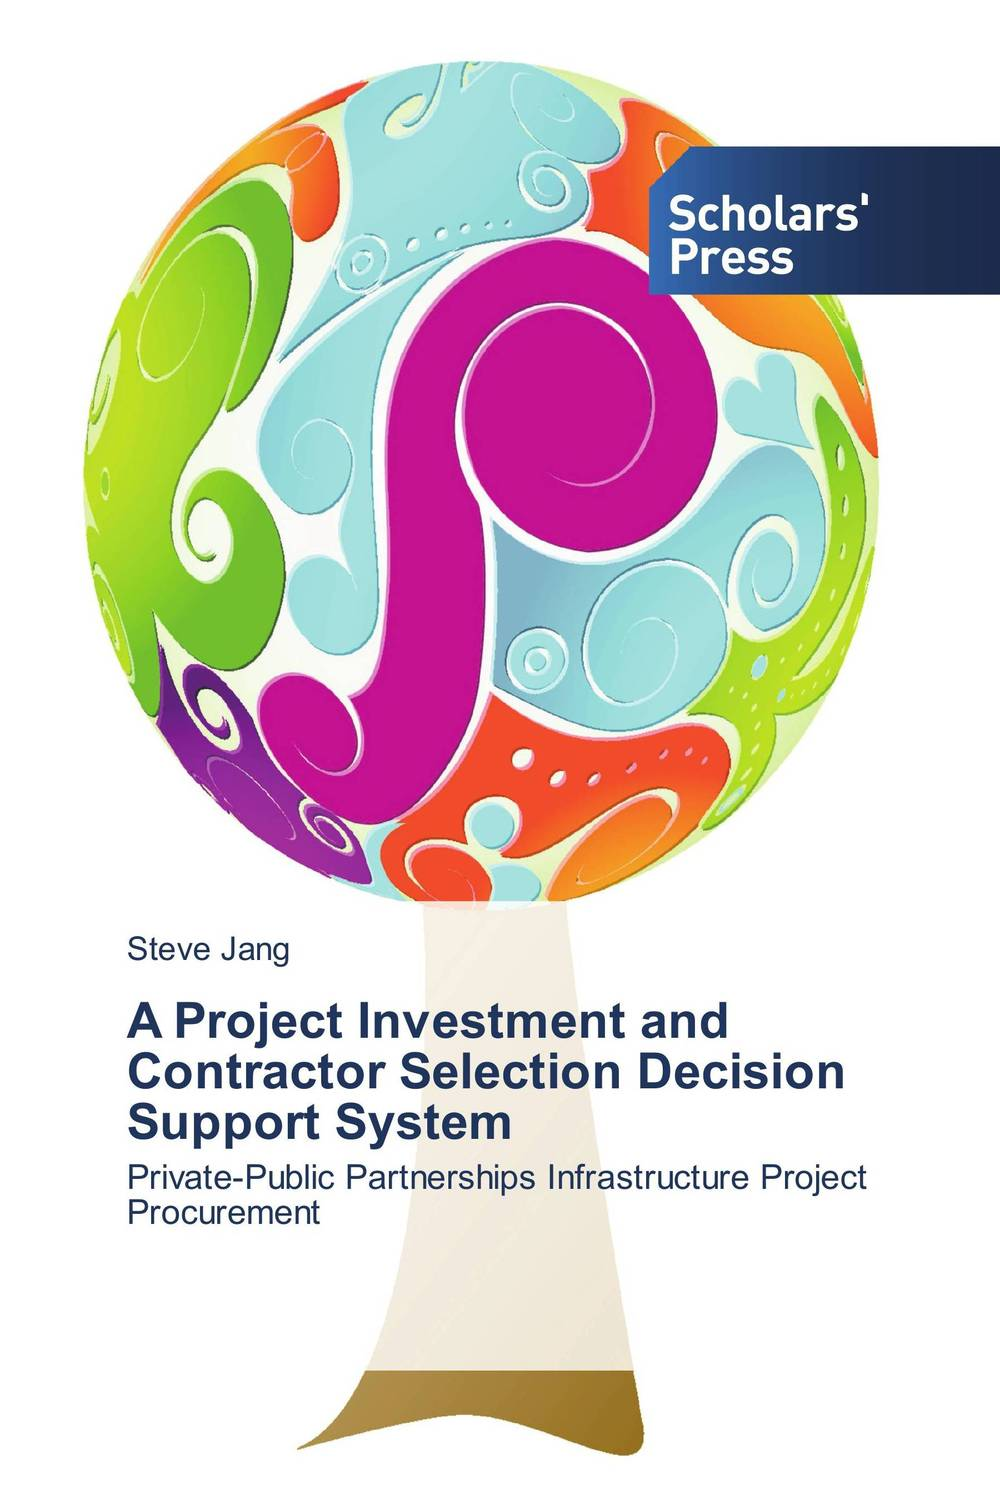 A Project Investment and Contractor Selection Decision Support System thomas stanton managing risk and performance a guide for government decision makers